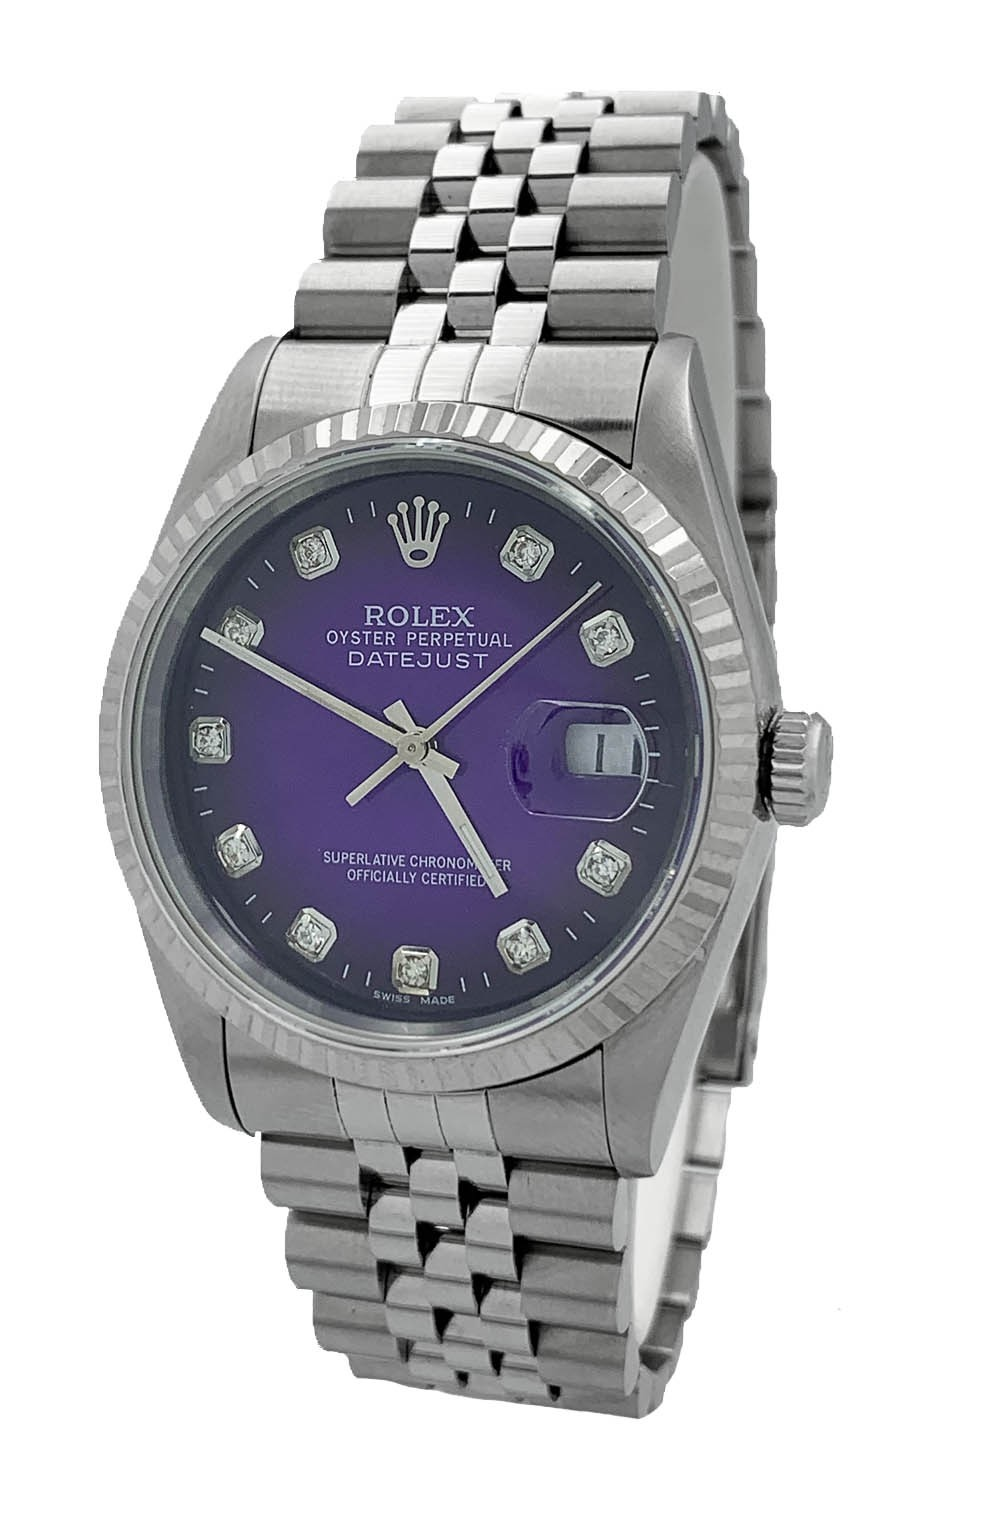 Rolex Oyster Perpetual Datejust Violet Aftermarket Dial Diamonds Ref. 16234